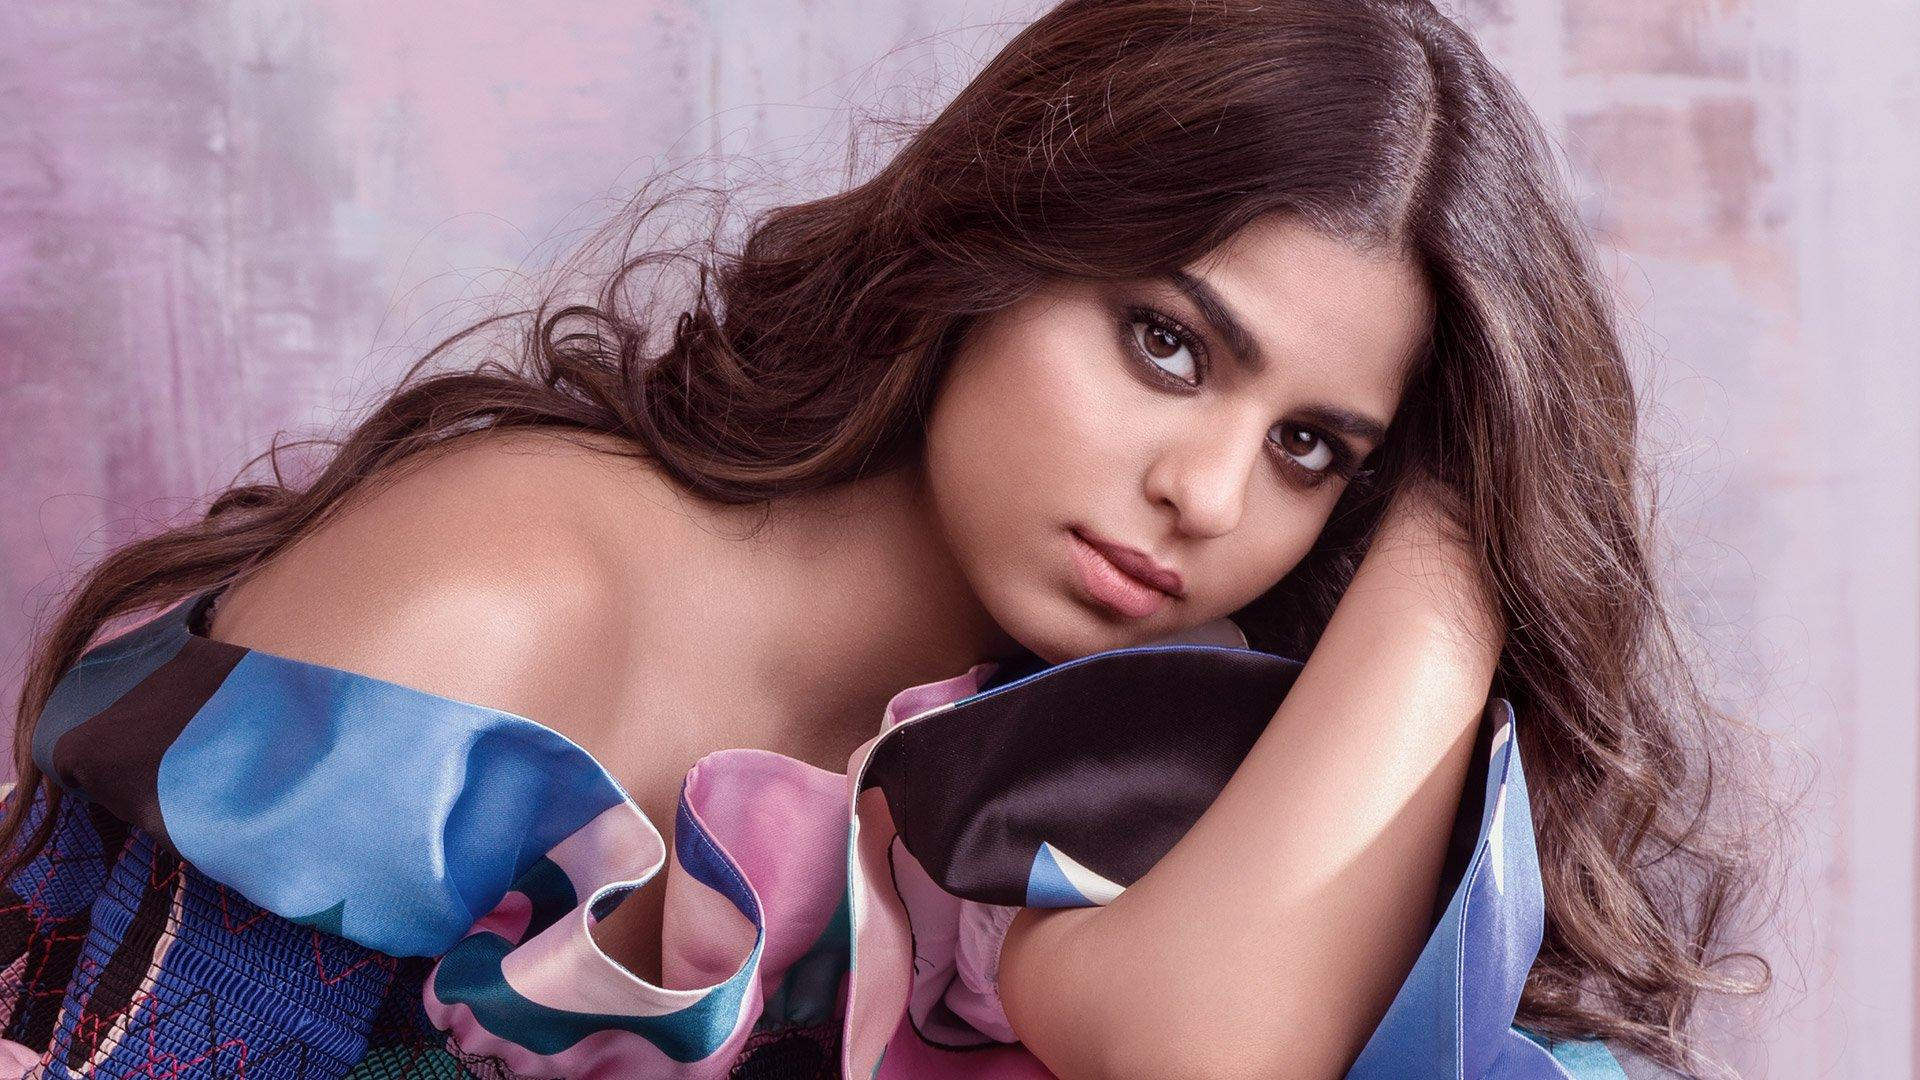 Who Does Suhana Khan Want To Date? This guy!